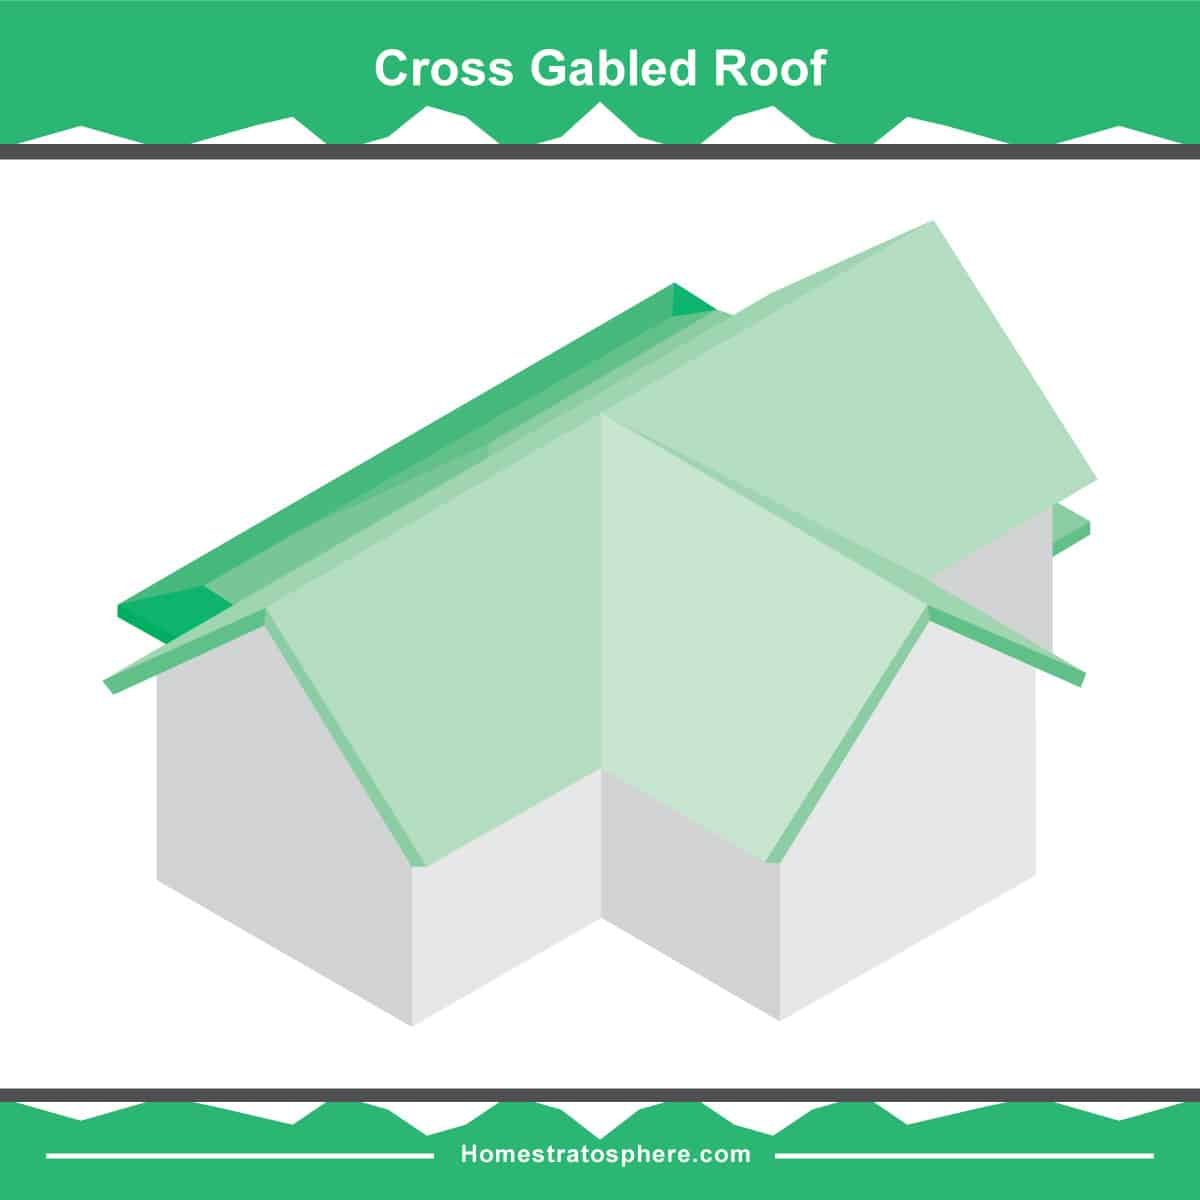 Cross gabled roof diagram